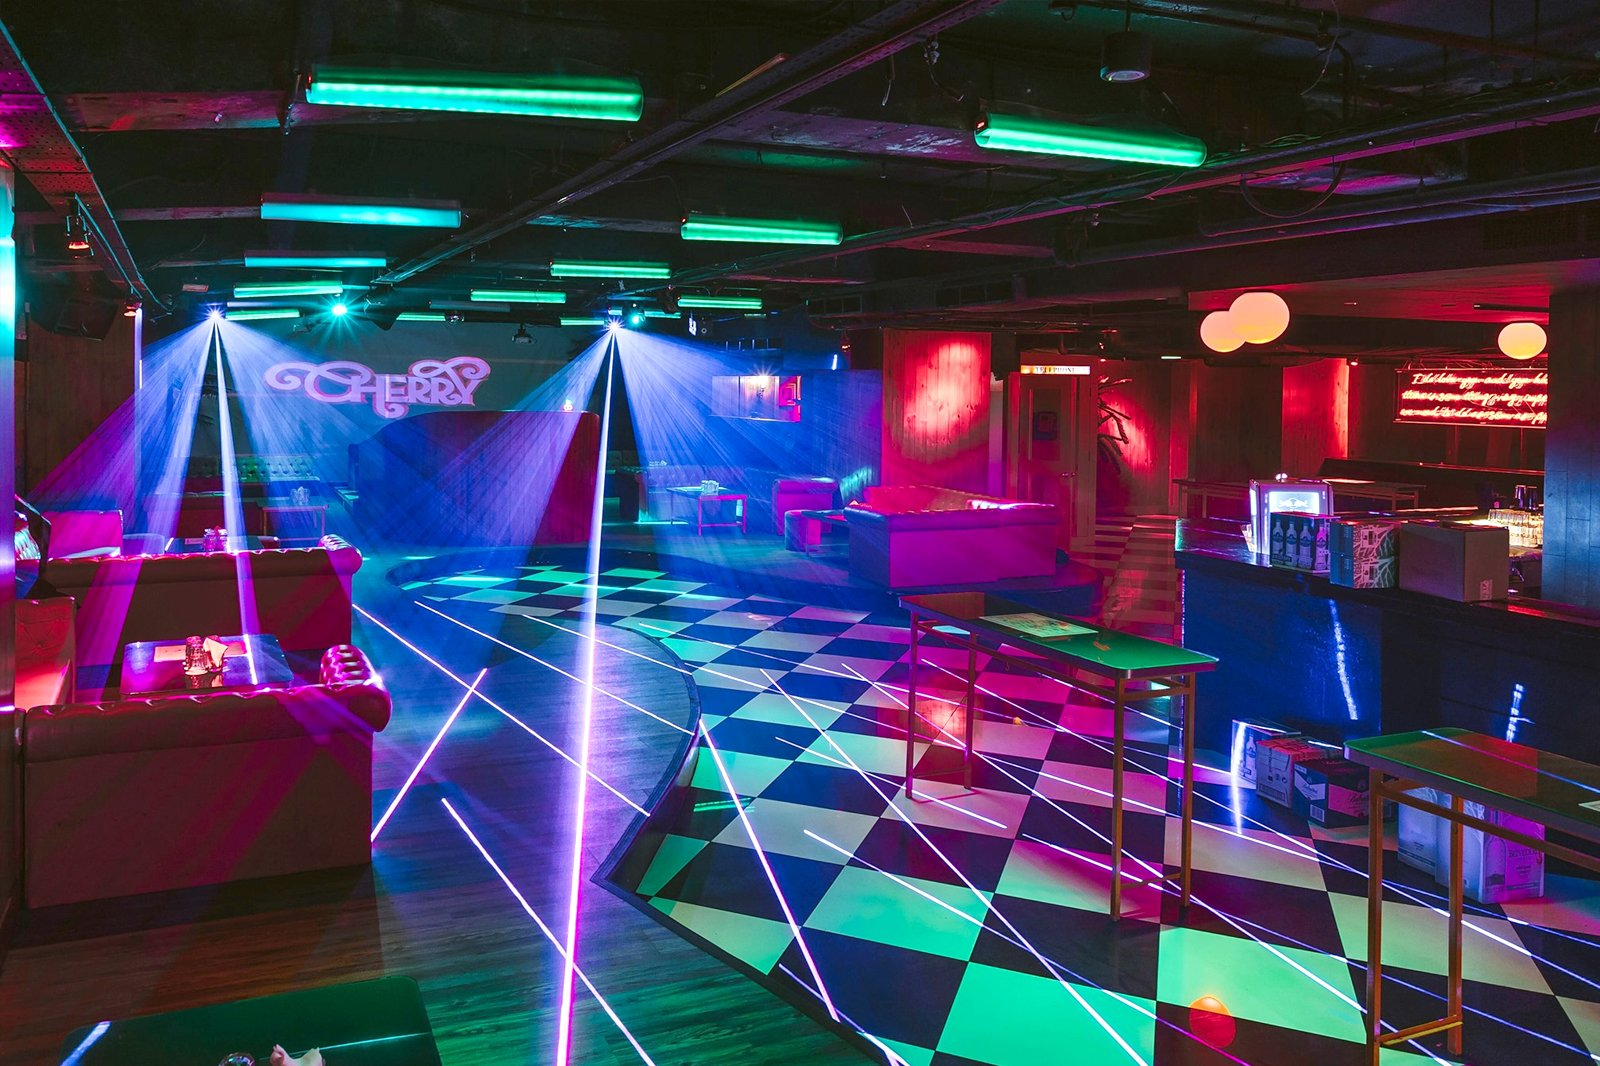 7 Best Singapore Clubs - All the best nightclubs and discos